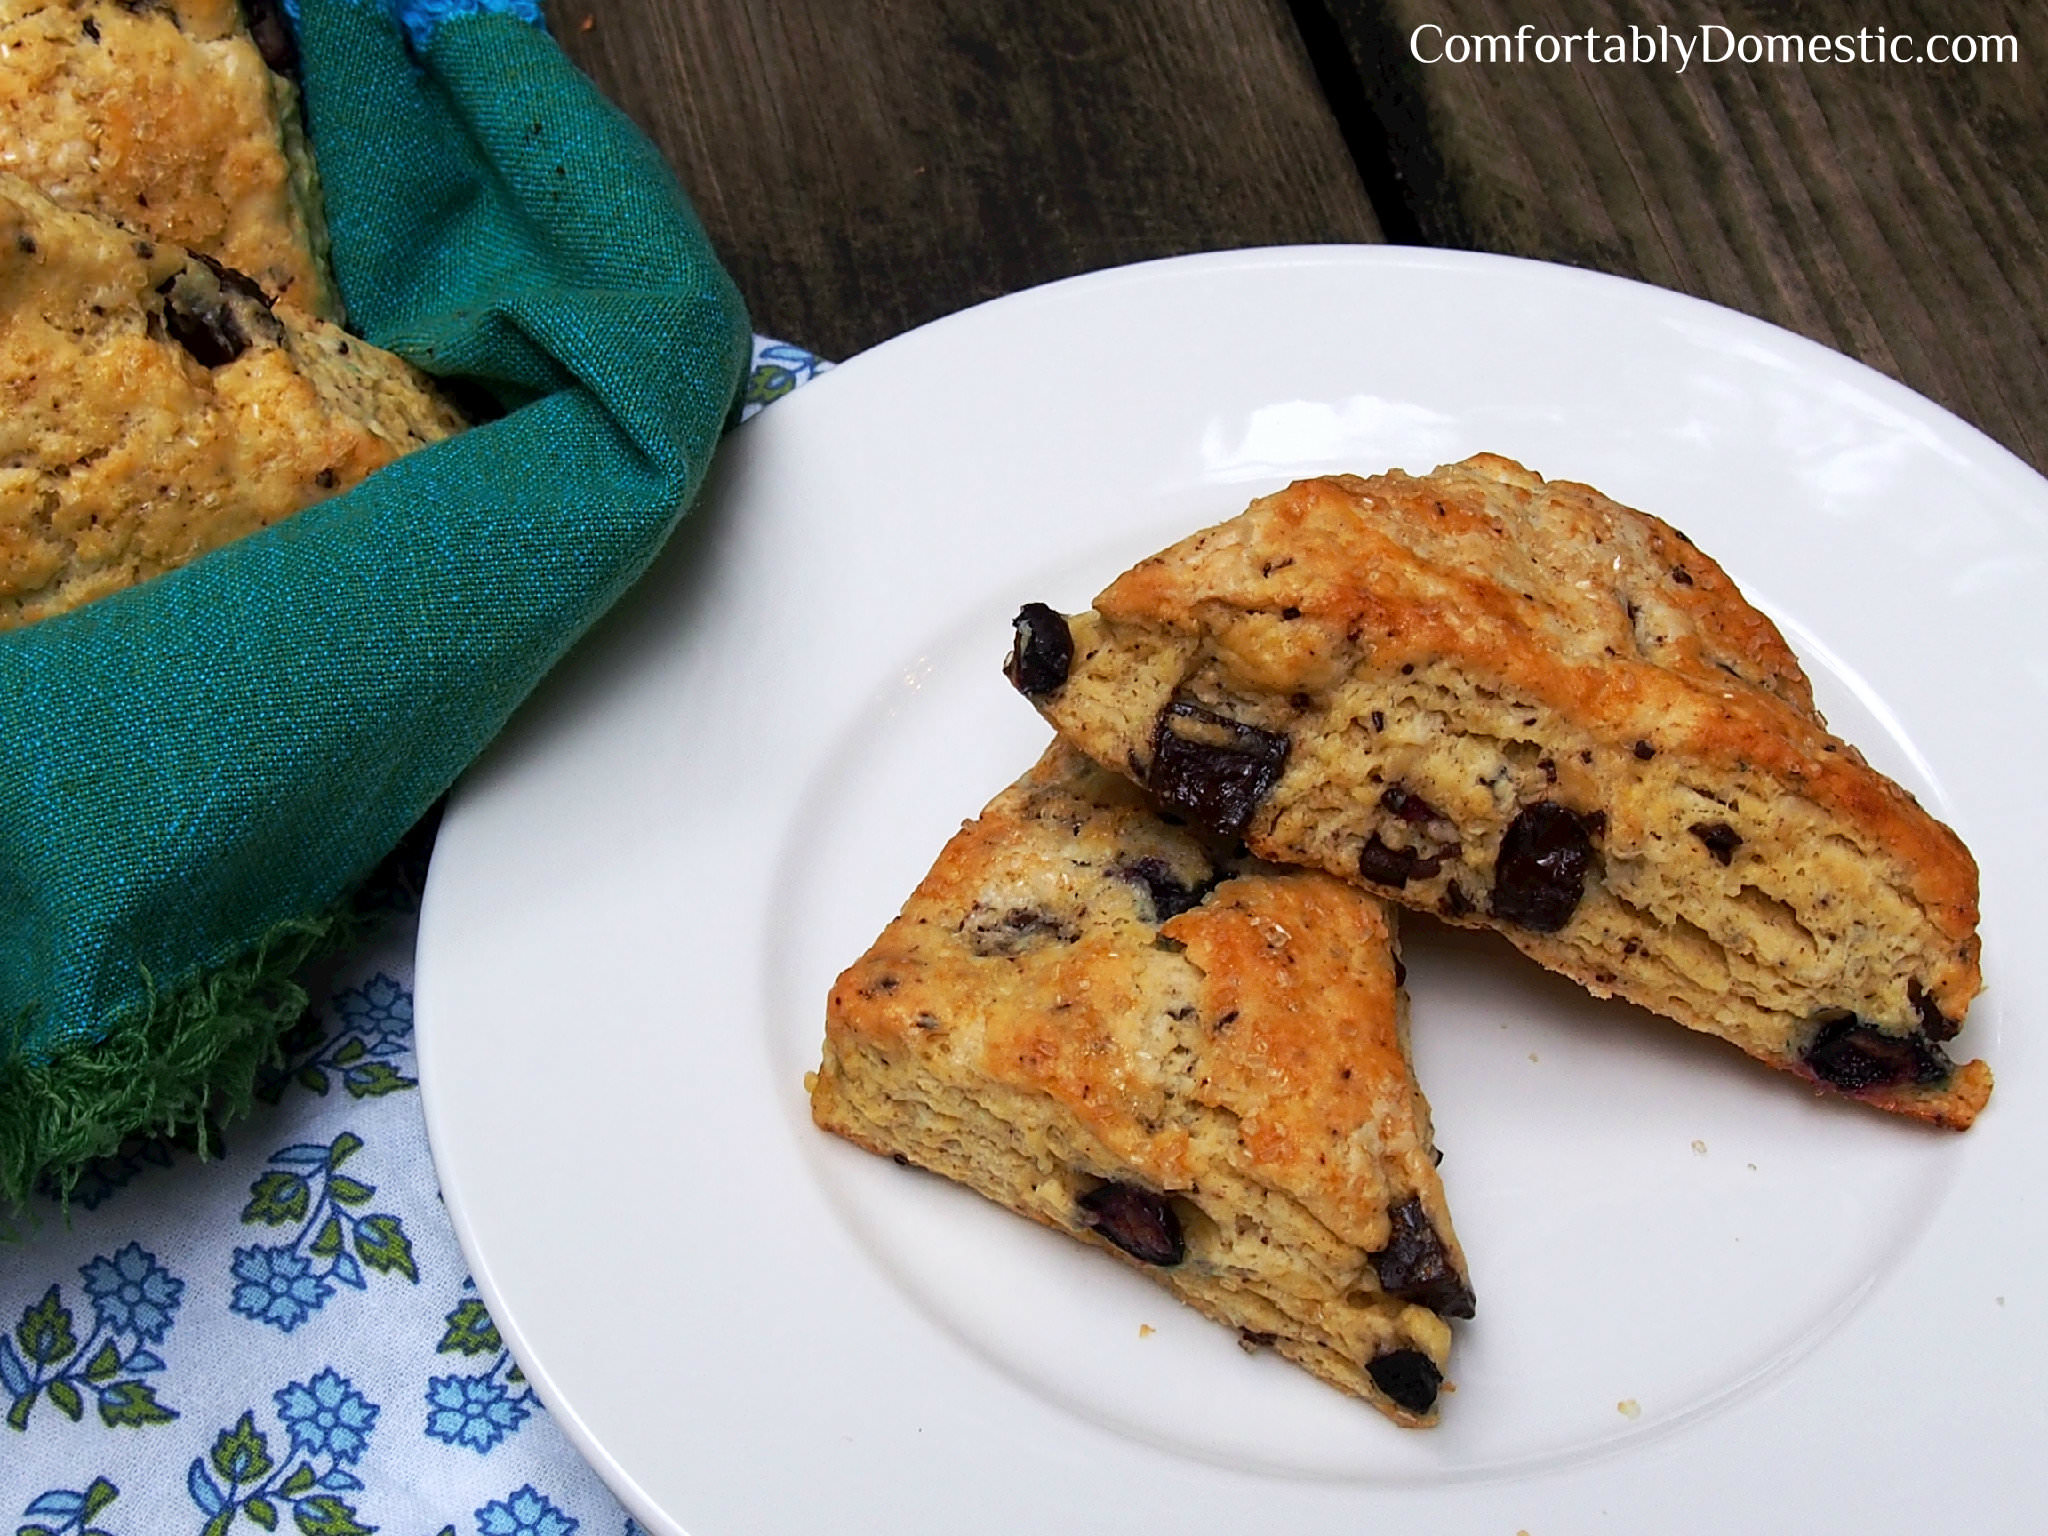 Dark Chocolate Blueberry Scones 2 | ComfortablyDomestic.com